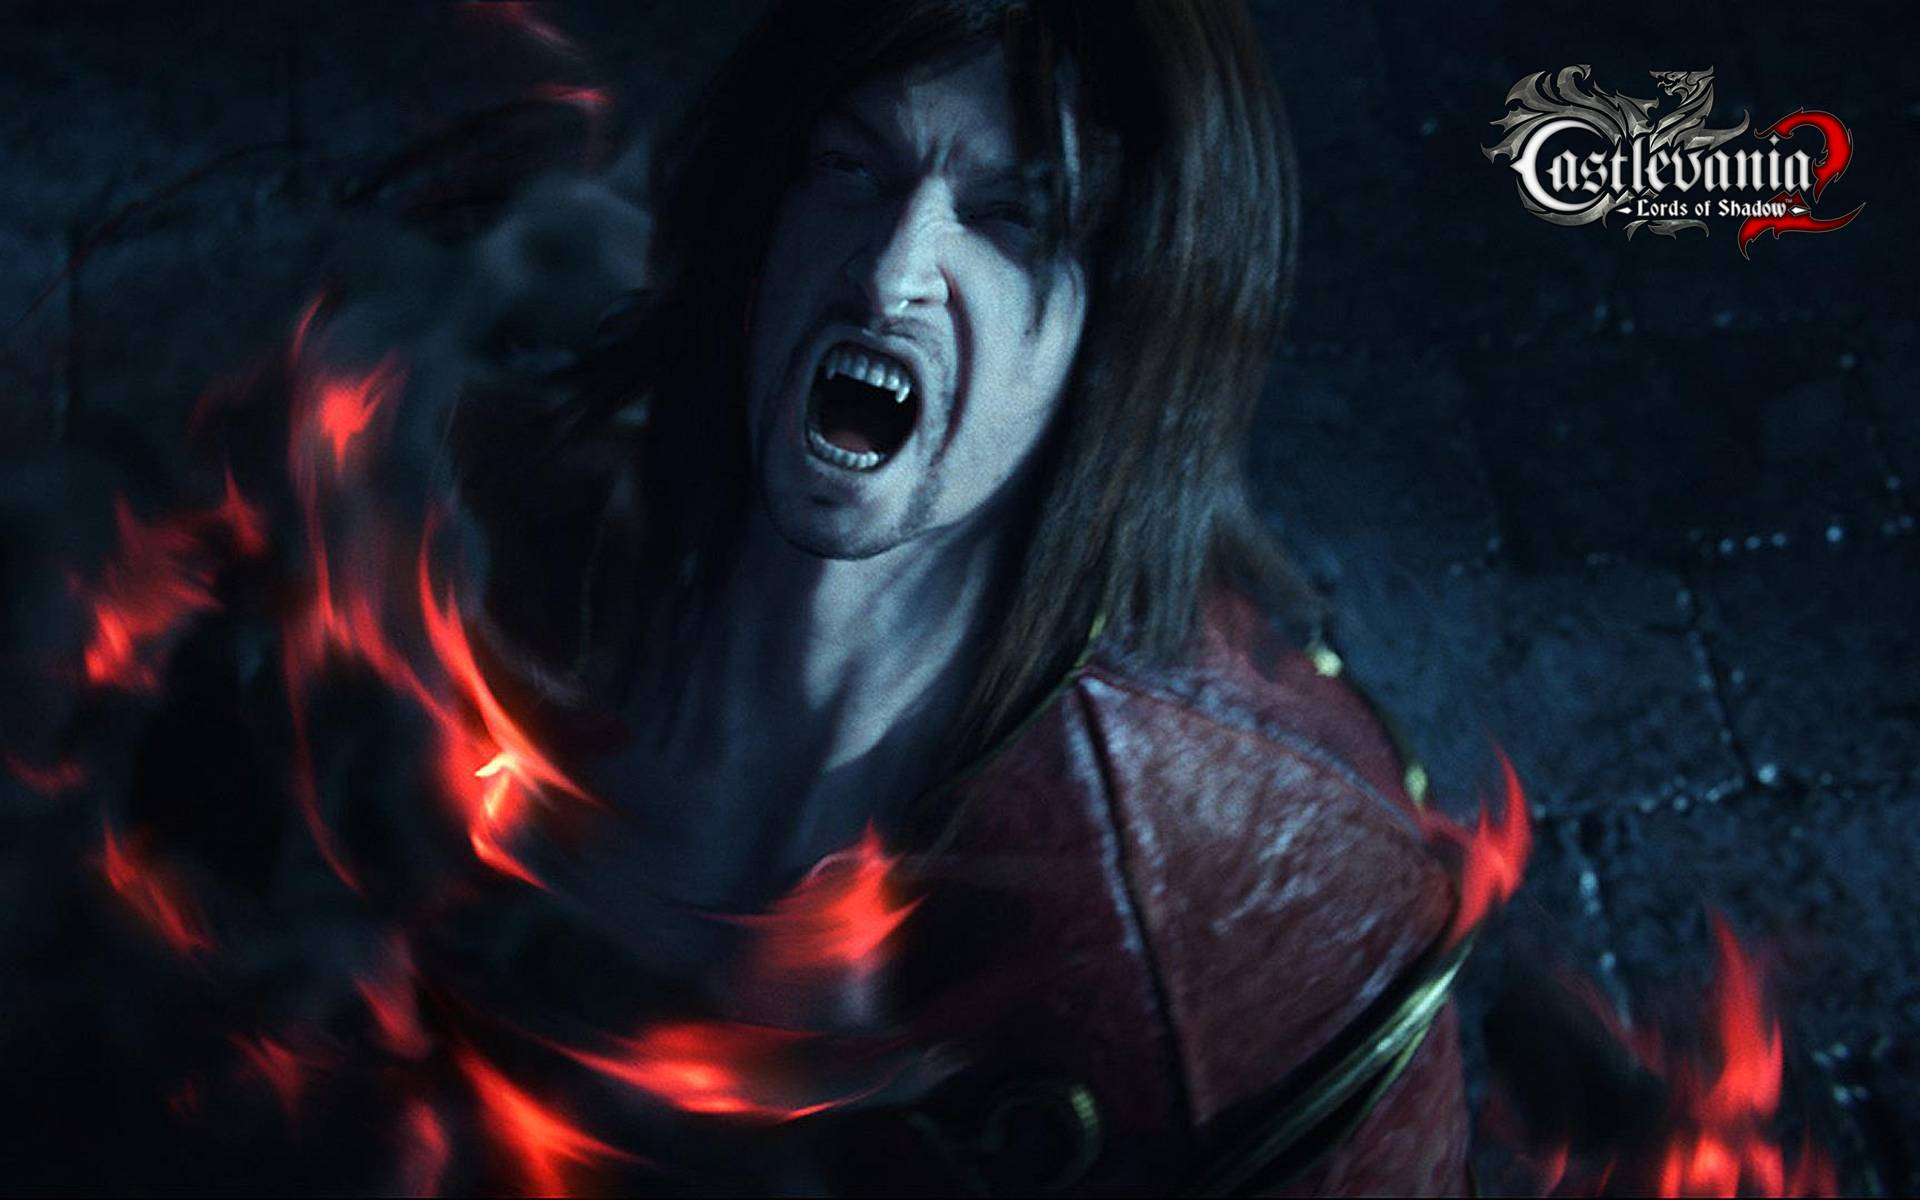 Castlevania Lords Of Shadow 2 Wallpapers In HD GamingBoltcom 1920x1200